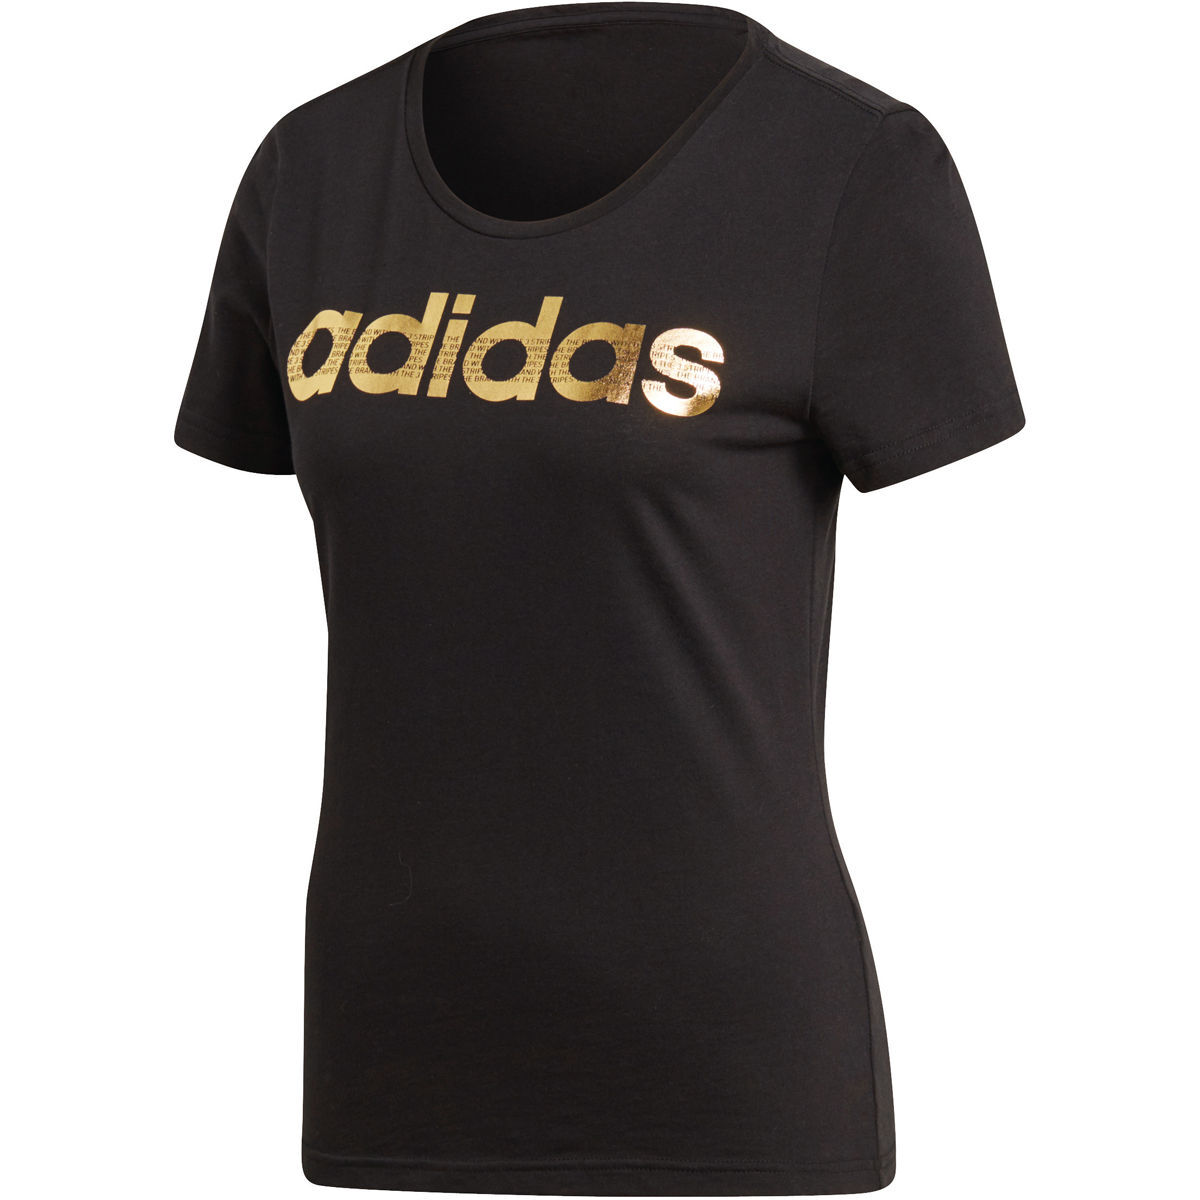 adidas damen t shirt foil linear schwarz m karstadt. Black Bedroom Furniture Sets. Home Design Ideas